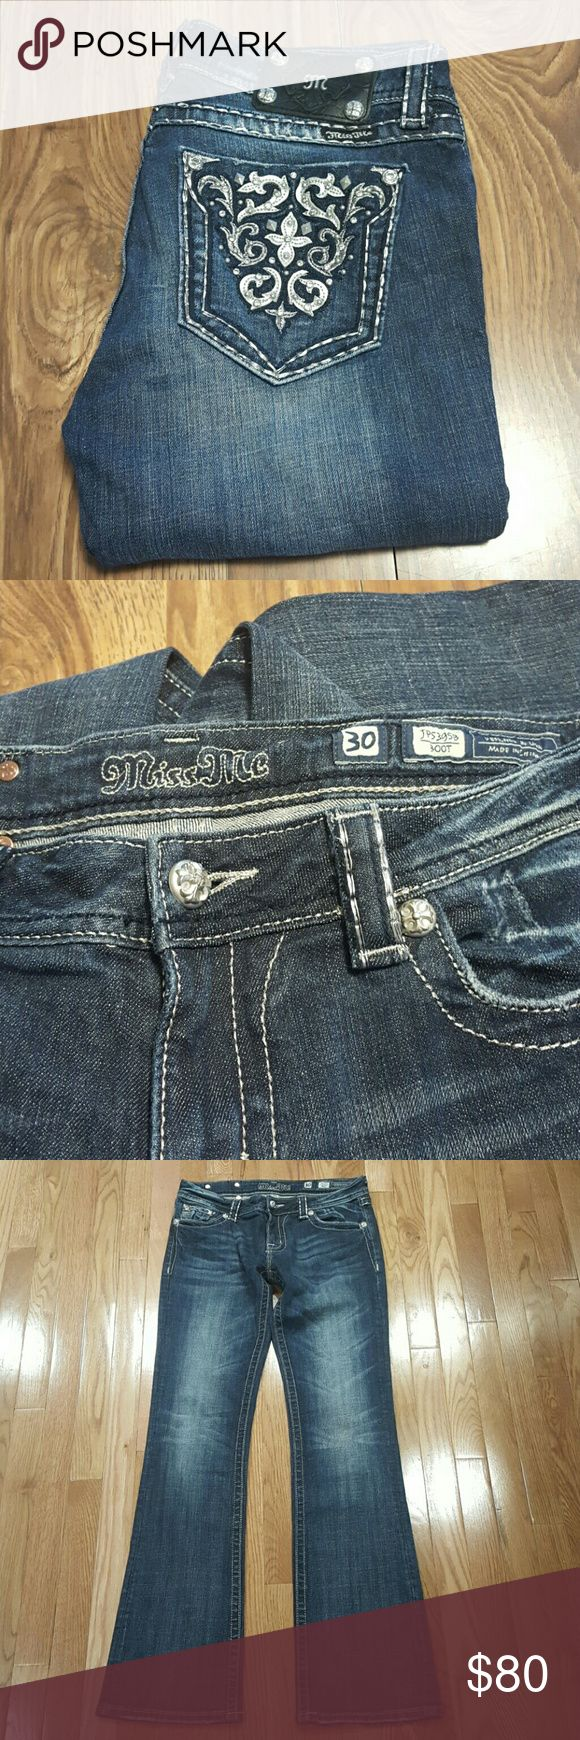 Miss Me denim >>PRICE IS FIRM-NO OFFERS ACCEPTED<<SELLING FOR FRIEND>>  Medium wash, inseam 34 inches, waist 30 inches, bootcut style, lightly distressed on left front pocket, and area between hip and back pockets.  EUC, no stains or tears, comes from smoke/pet free home and washed in perfume/dye free detergent. Miss Me Jeans Boot Cut